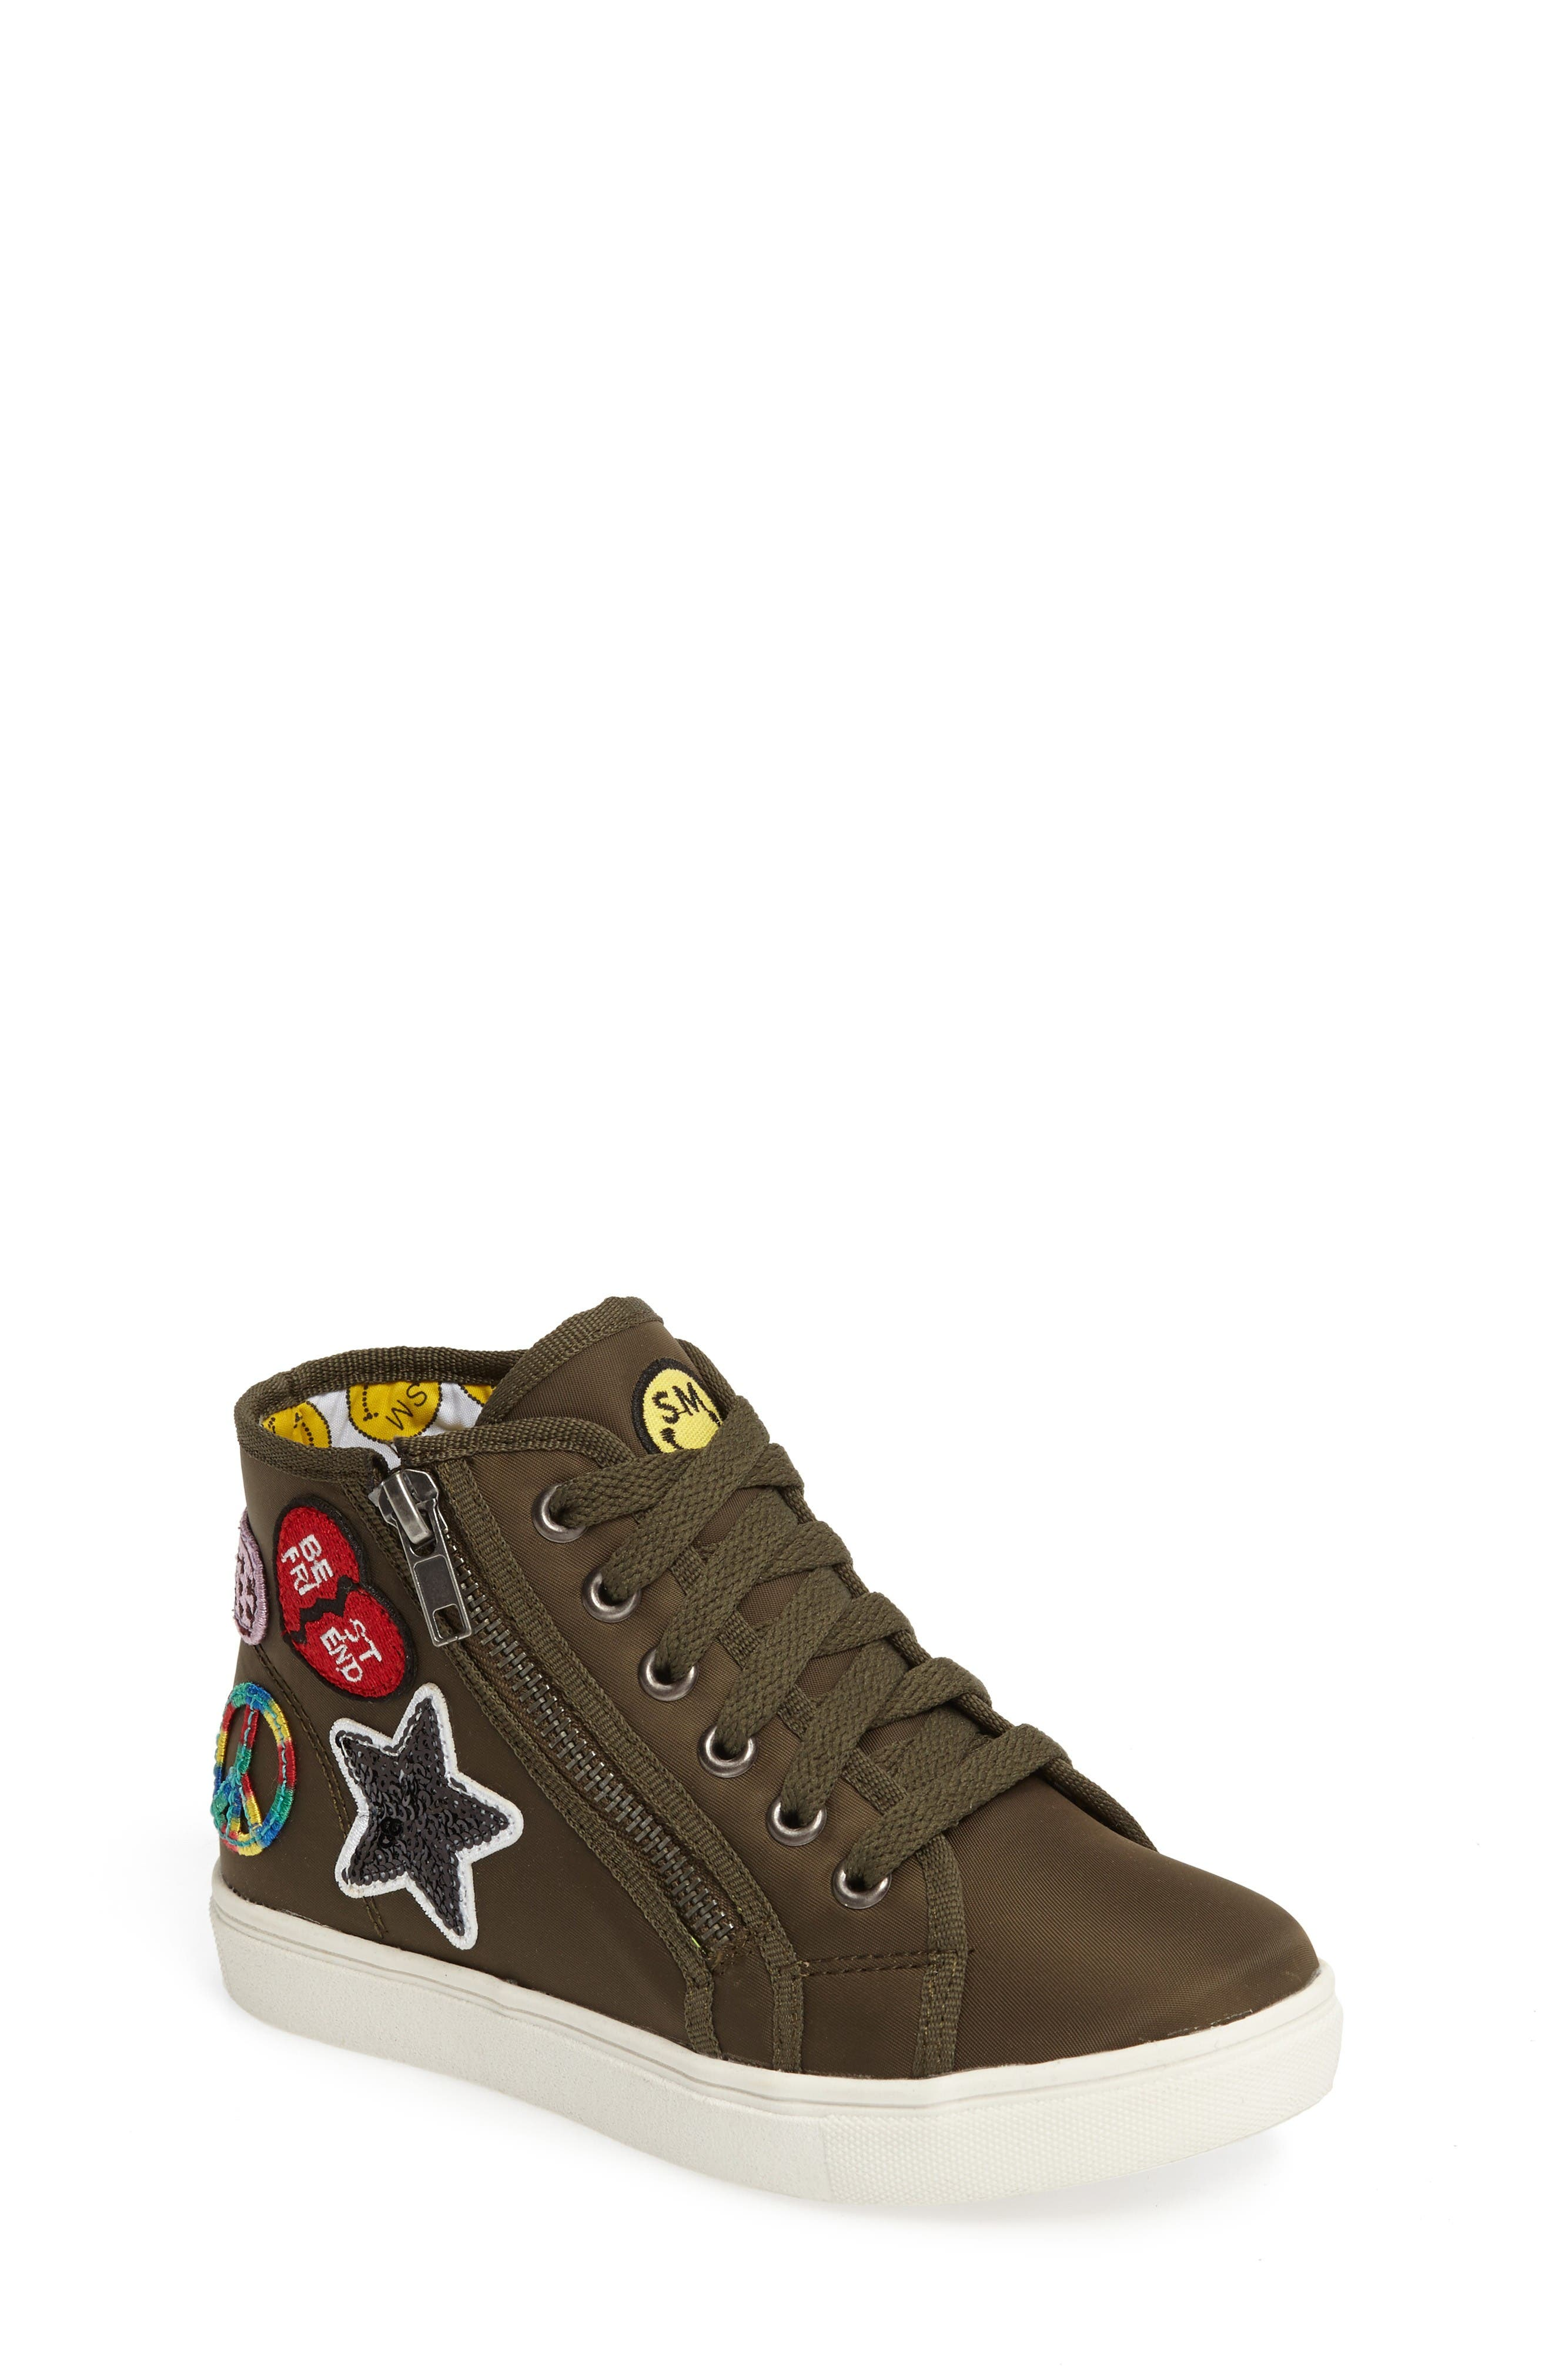 Steve Madden Code High Top Zip Sneaker (Toddler, Little Kid & Big Kid)